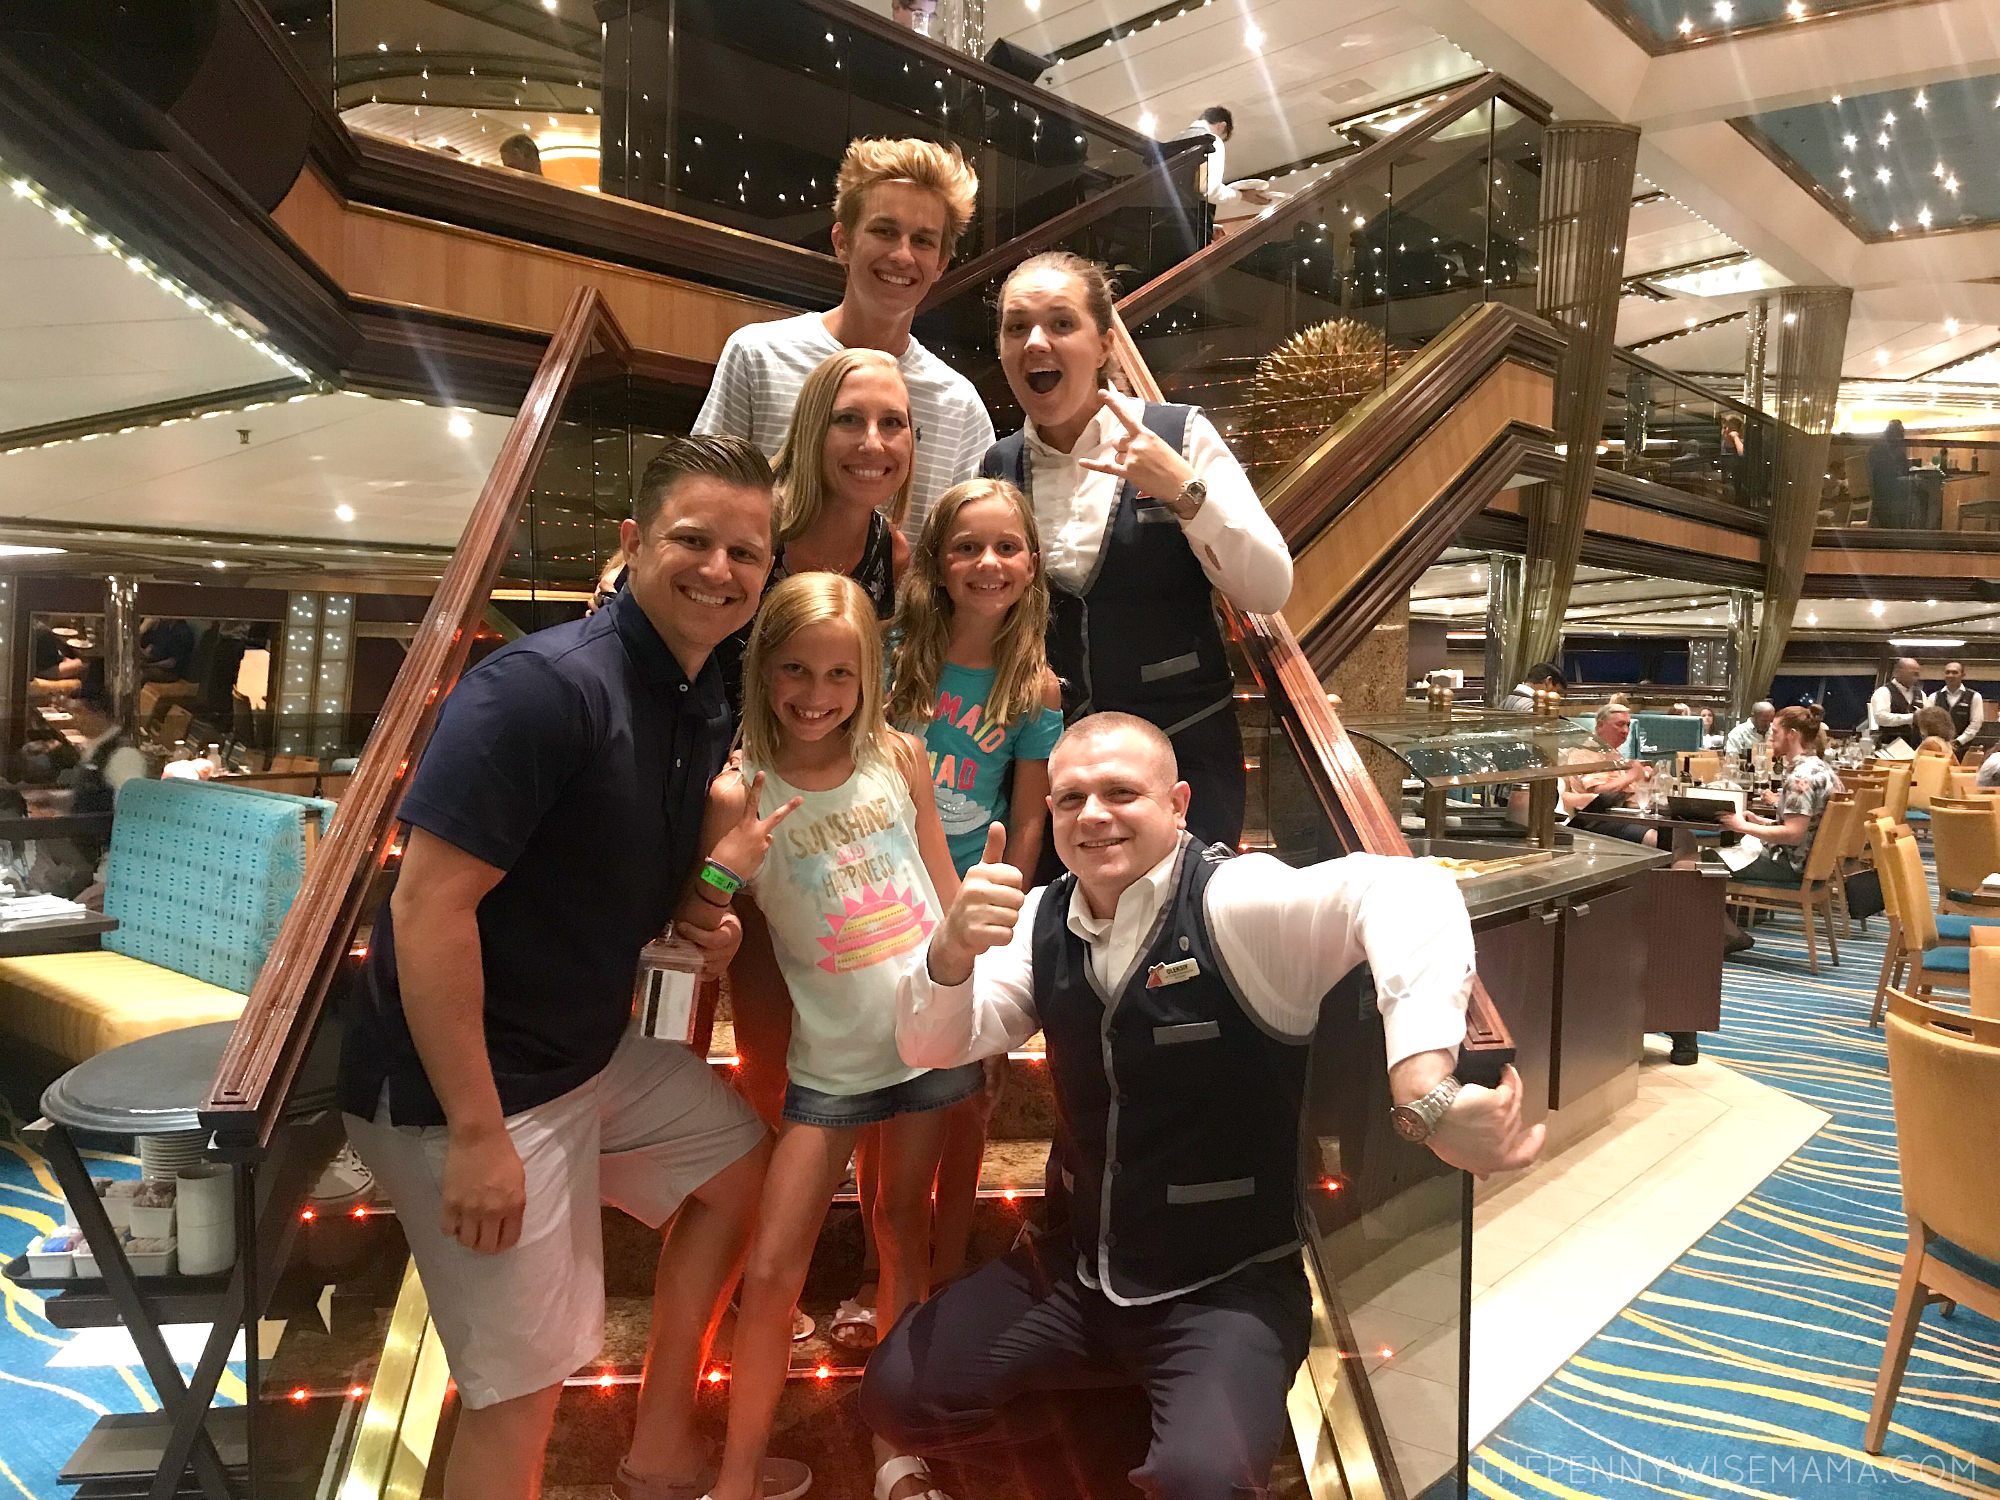 Carnival Cruise Line Has the Best Crew!